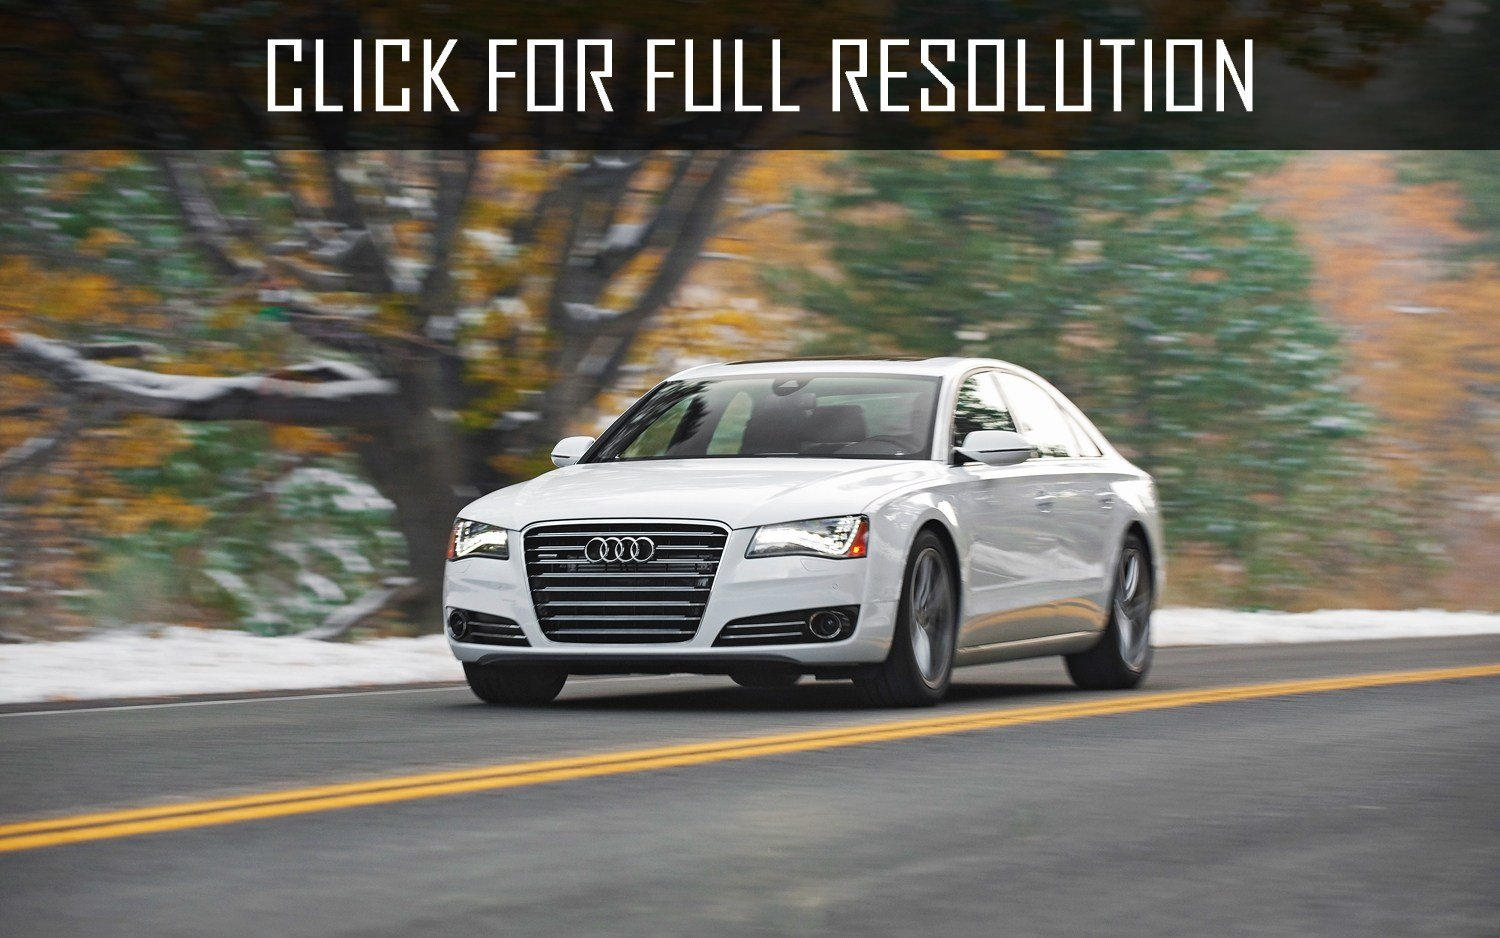 Latest Audi A8 Long Amazing Photo Gallery Some Information And Free Download